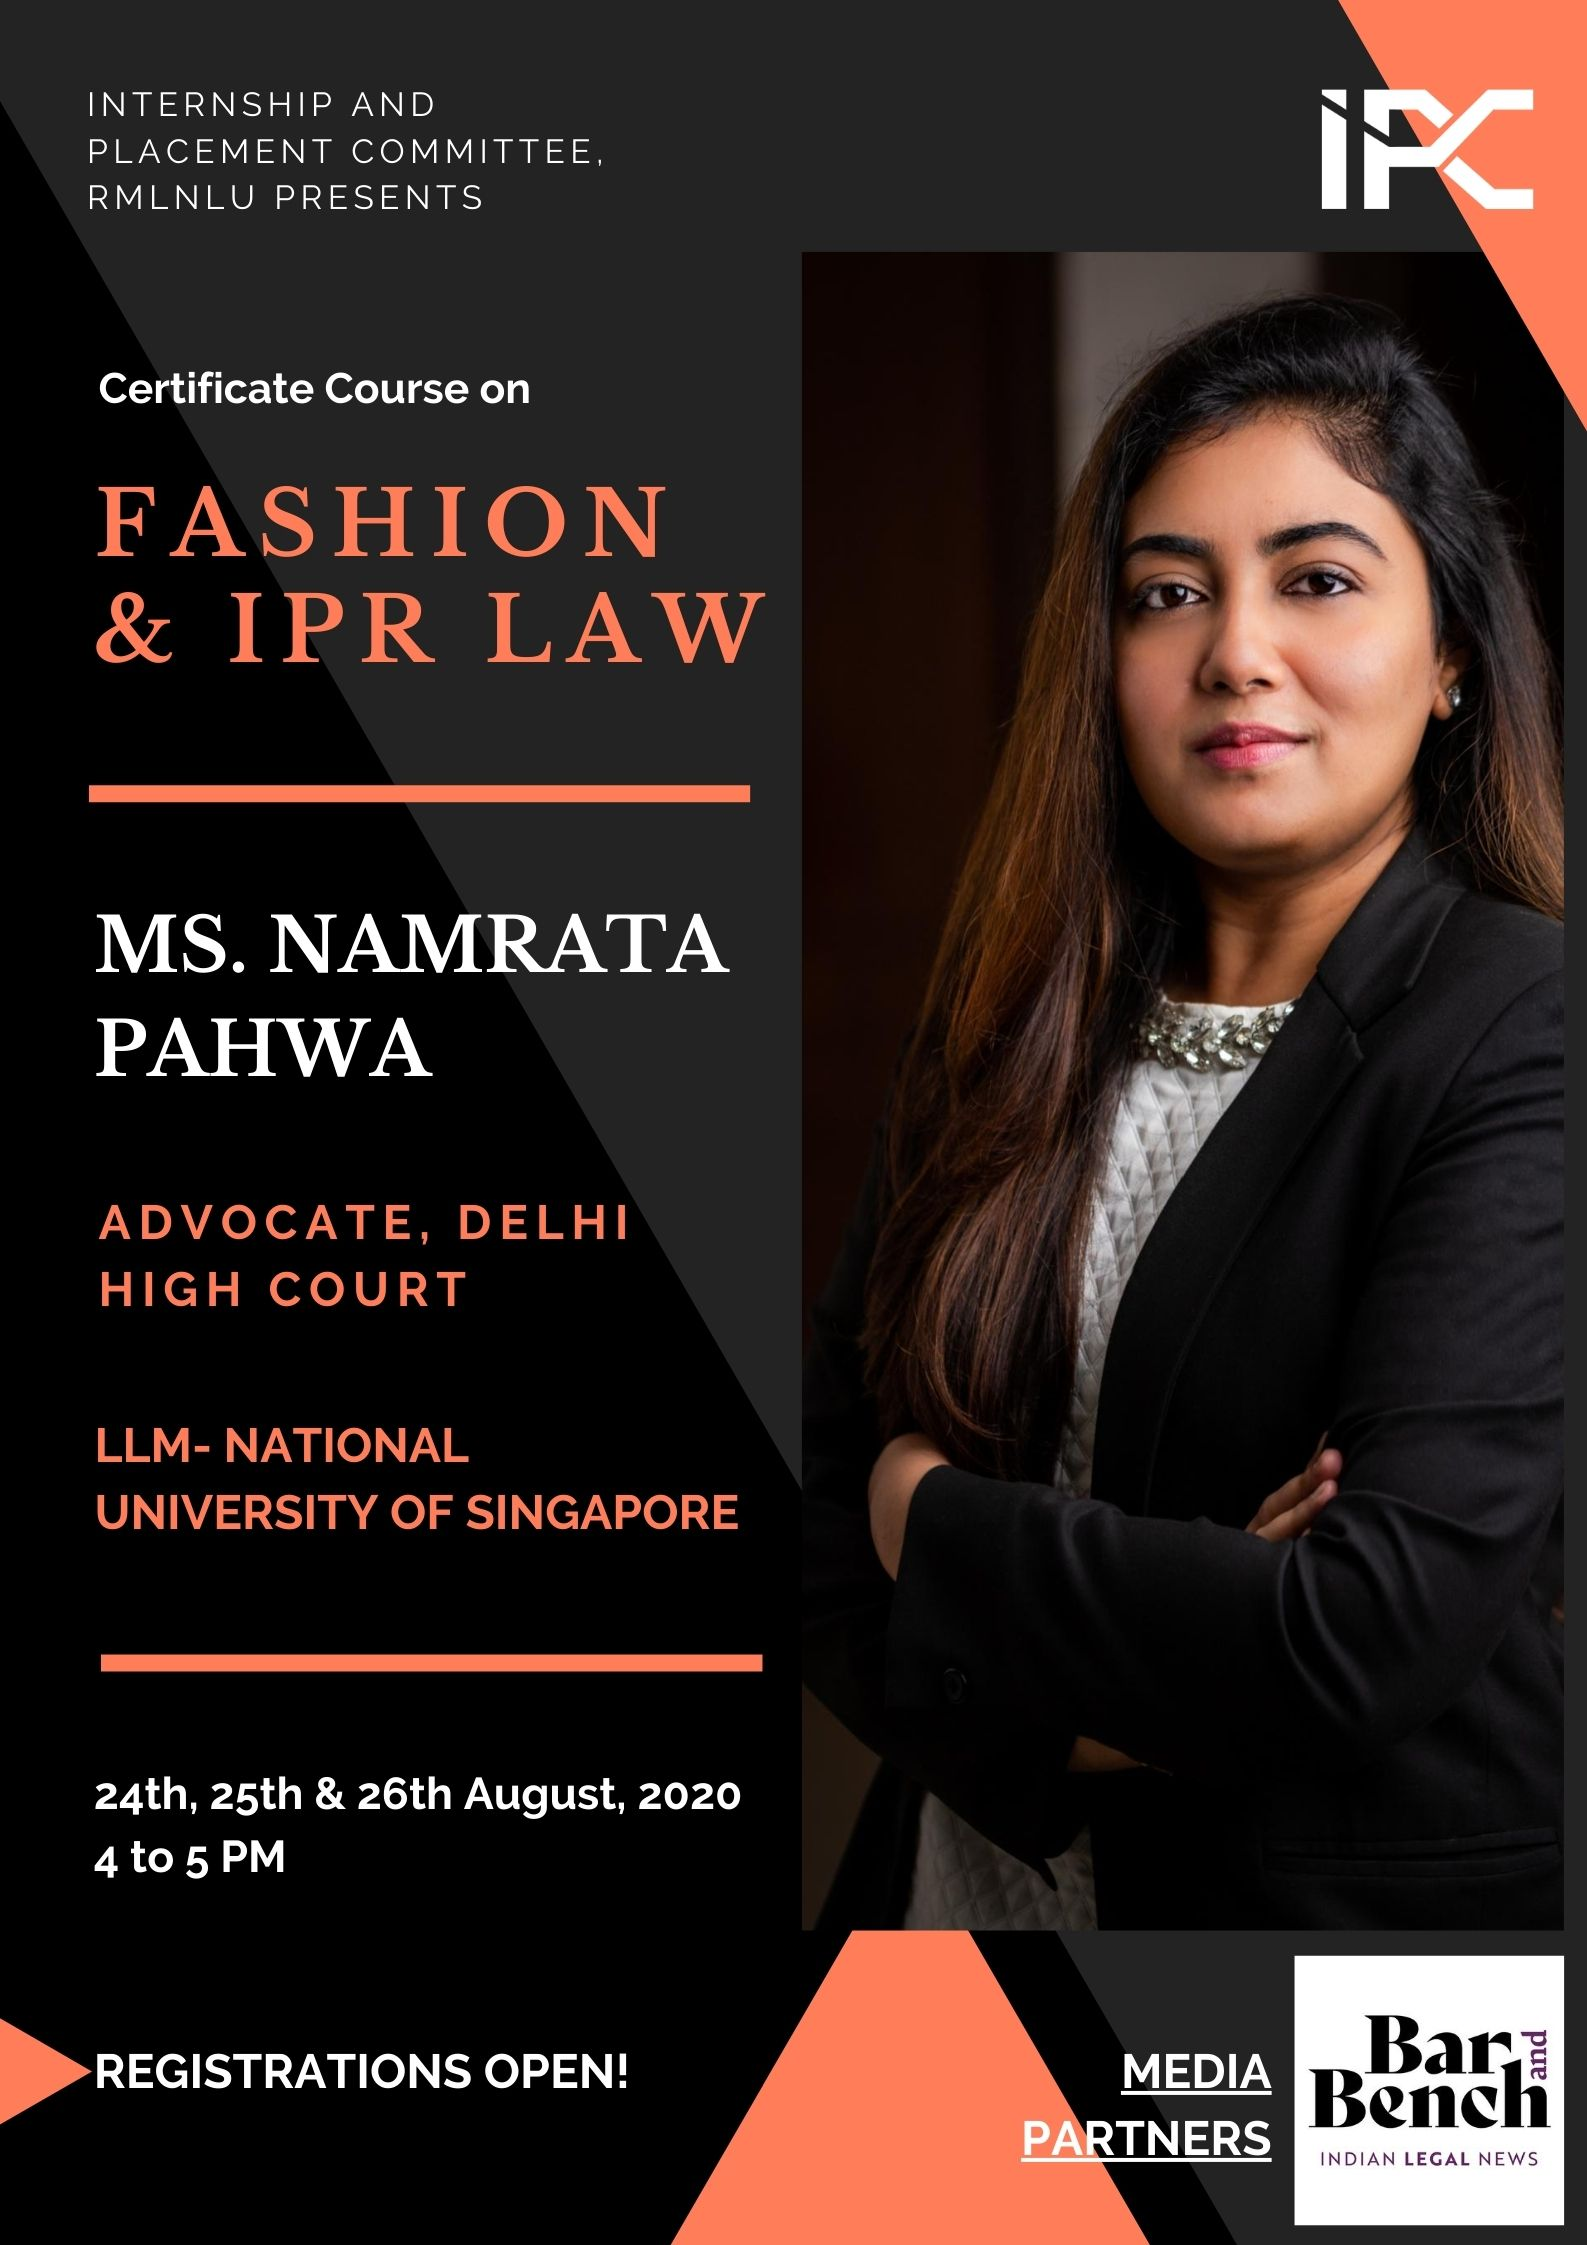 RMLNLU's Online Certificate Course on Fashion Law